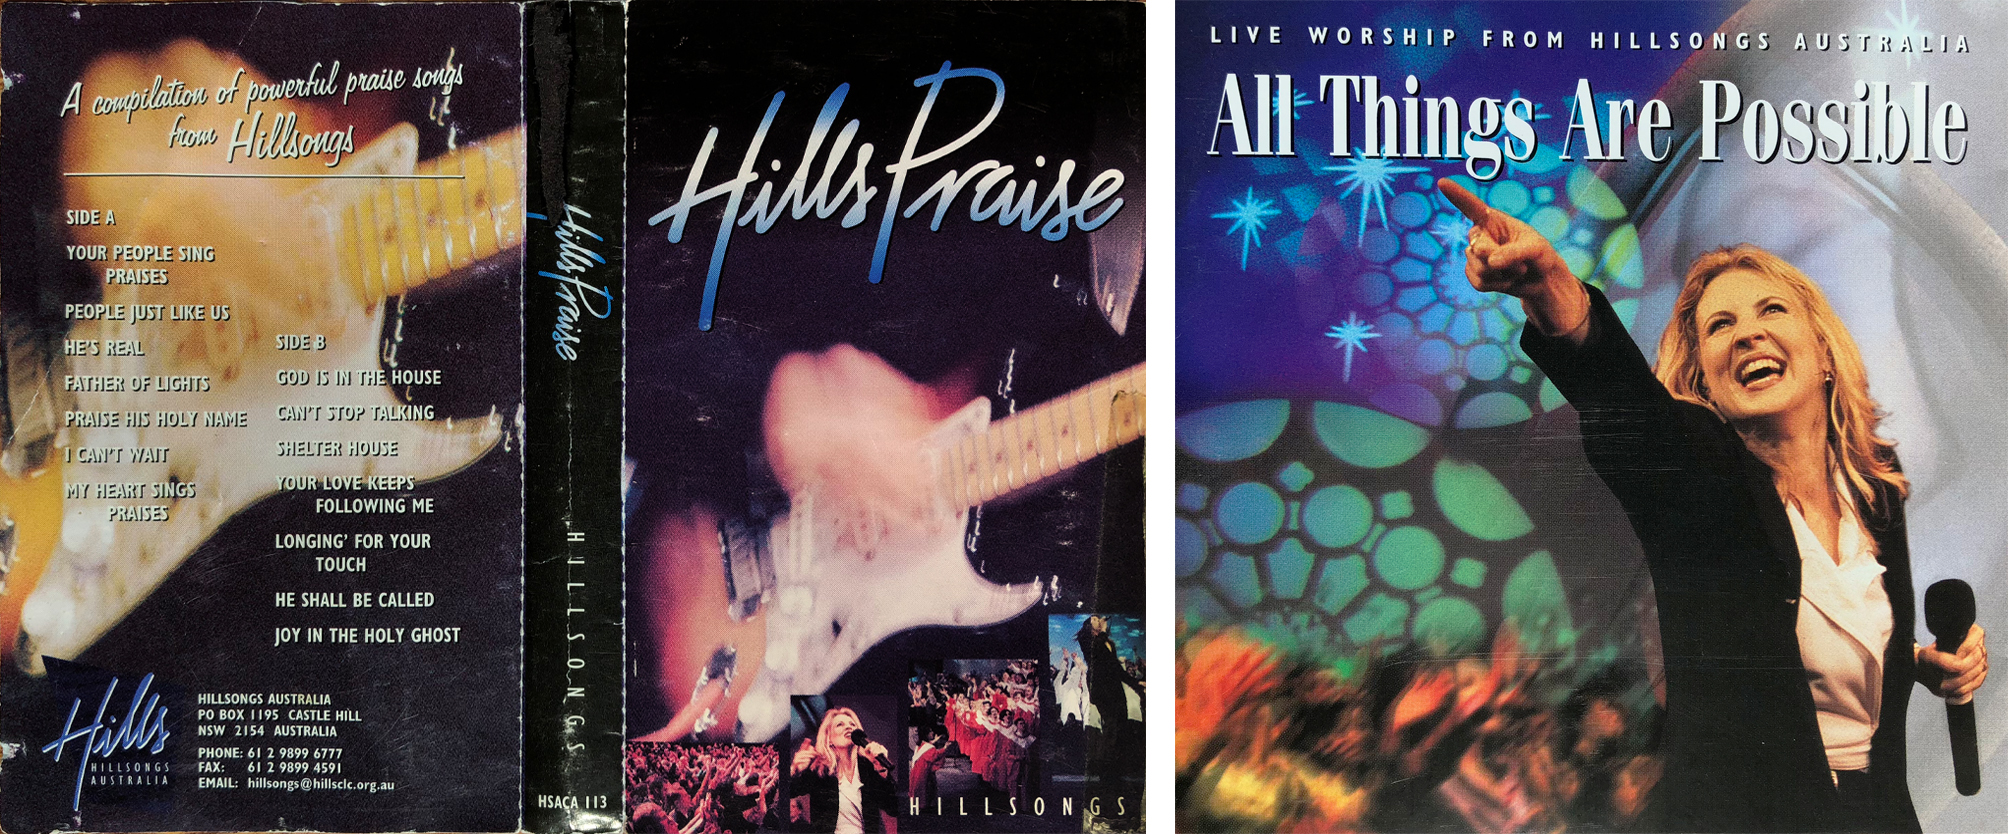 """Hills Praise"" cassette album artwork and ""All Things Are Possible"" CD album artwork (1997)"